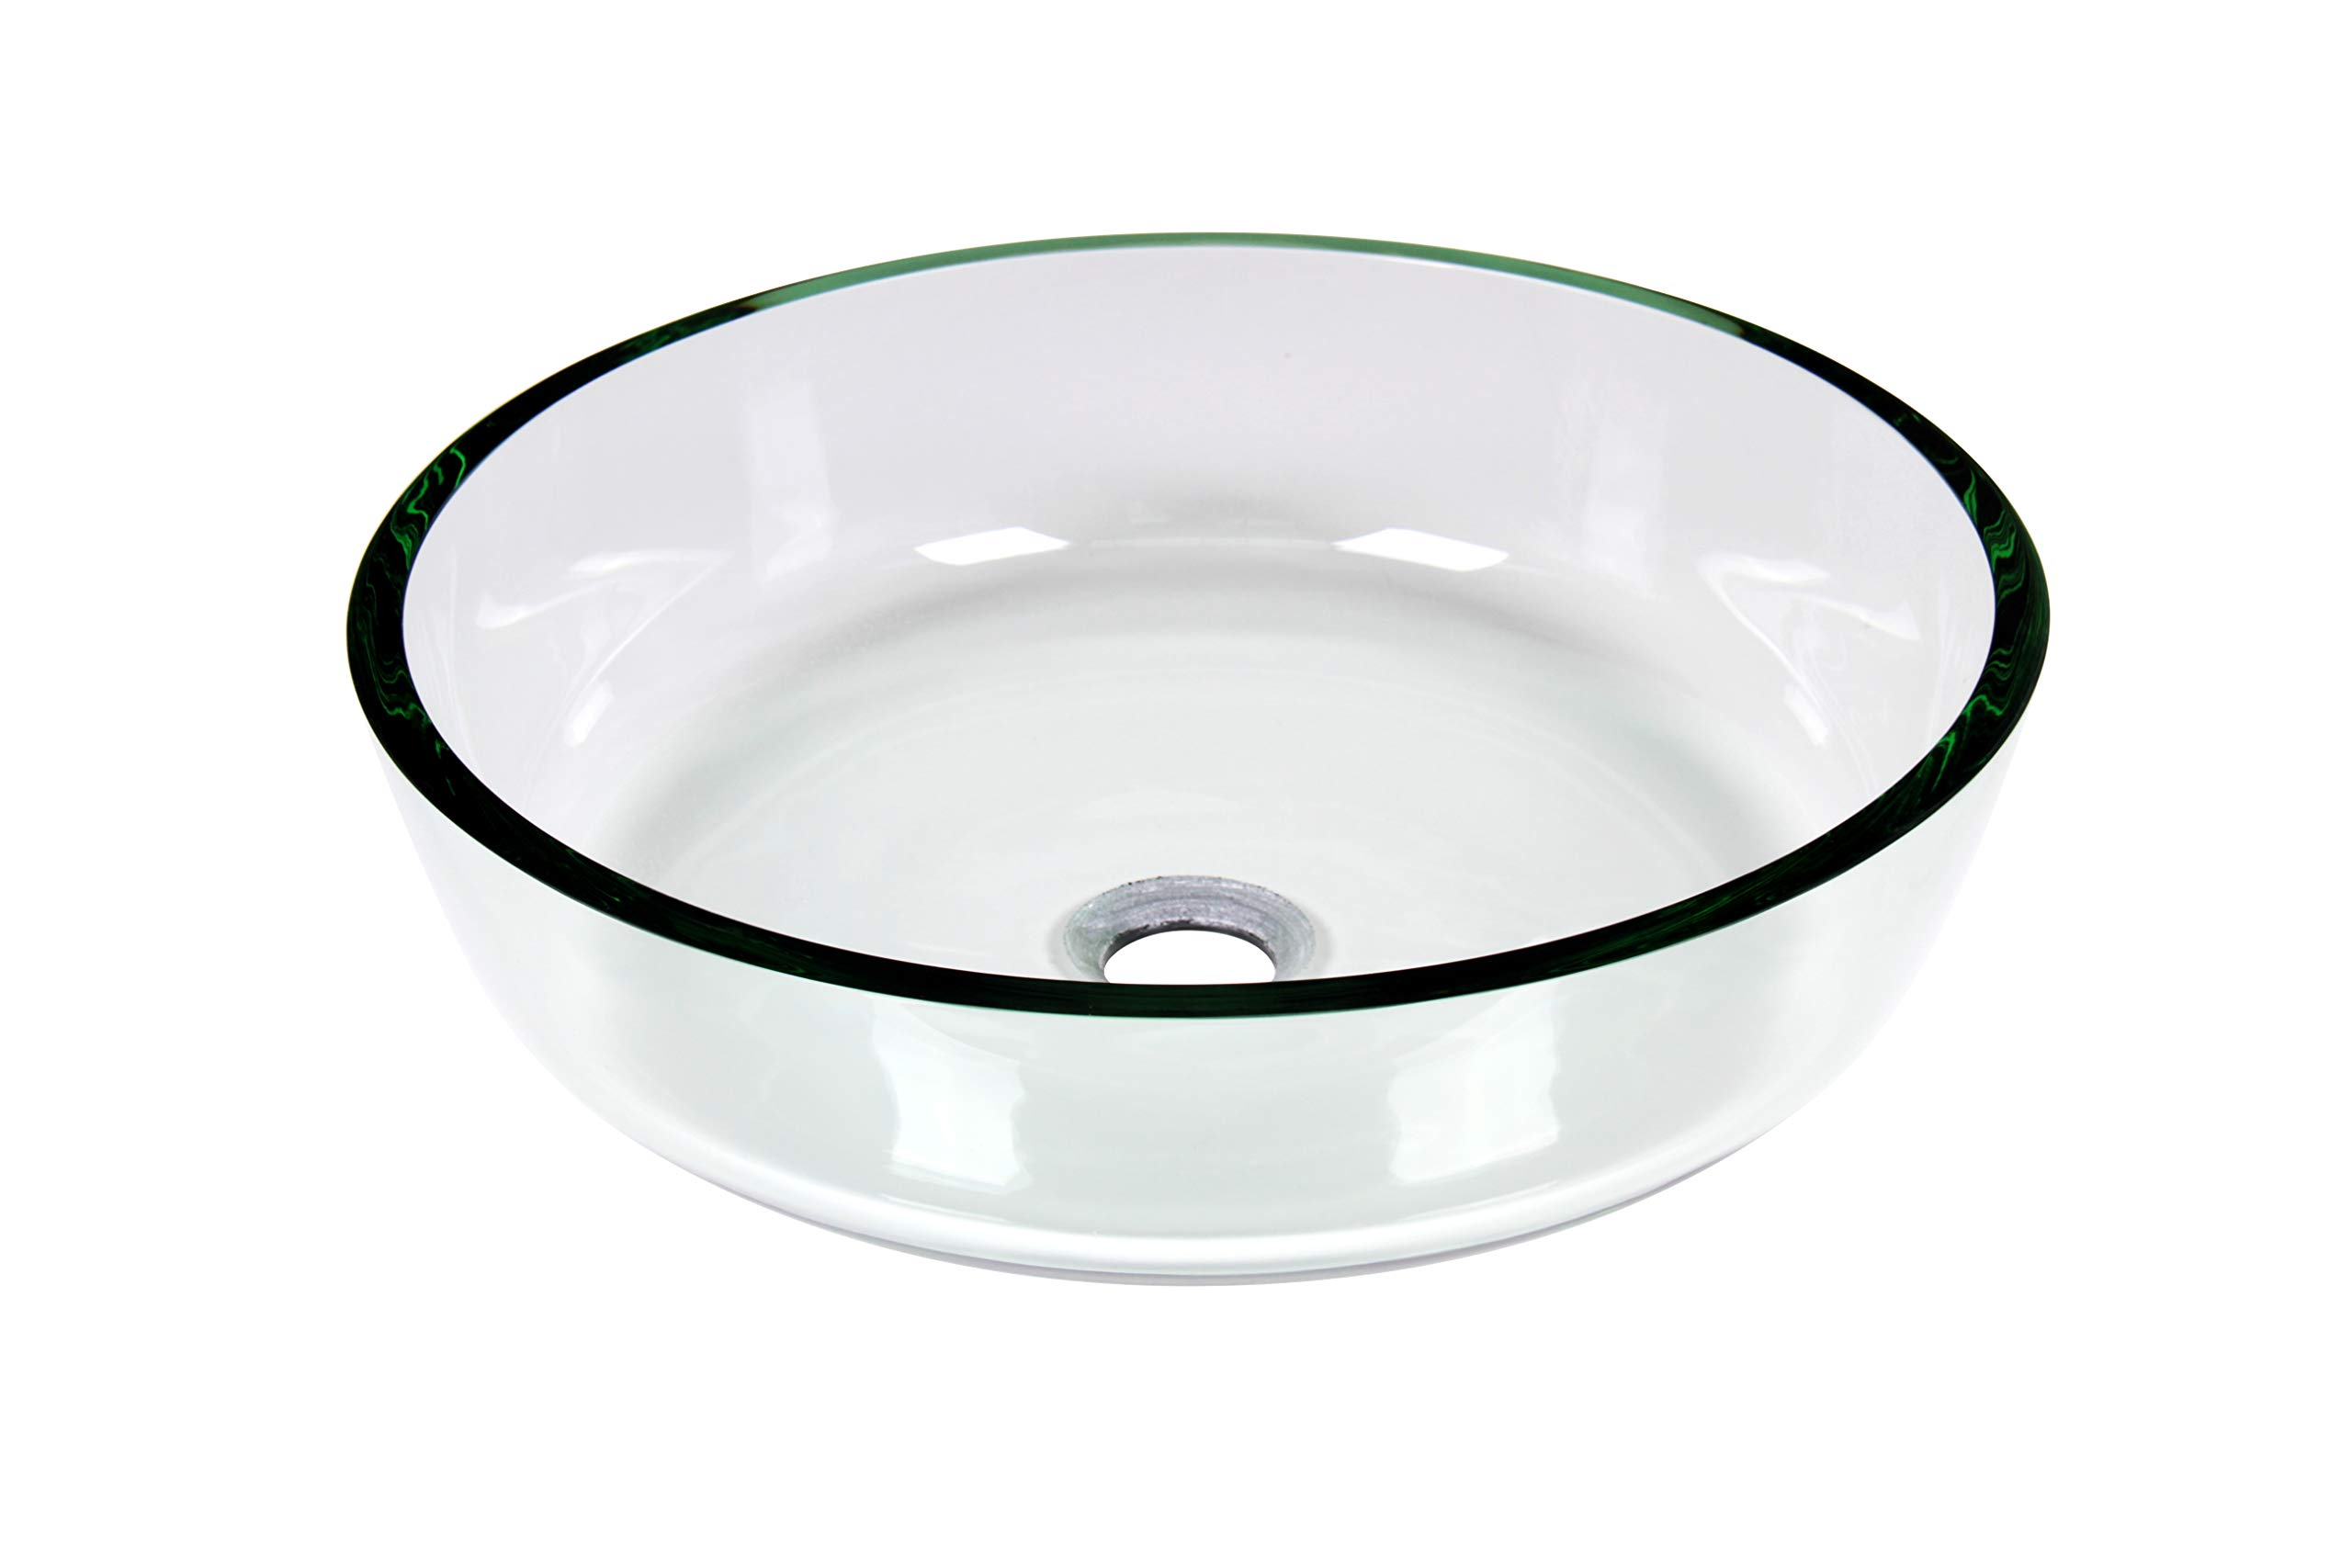 Jano Modern Round Flat Bottom Clear Tempered Glass Vessel Sink Bathroom Sink with Pop Up Drain